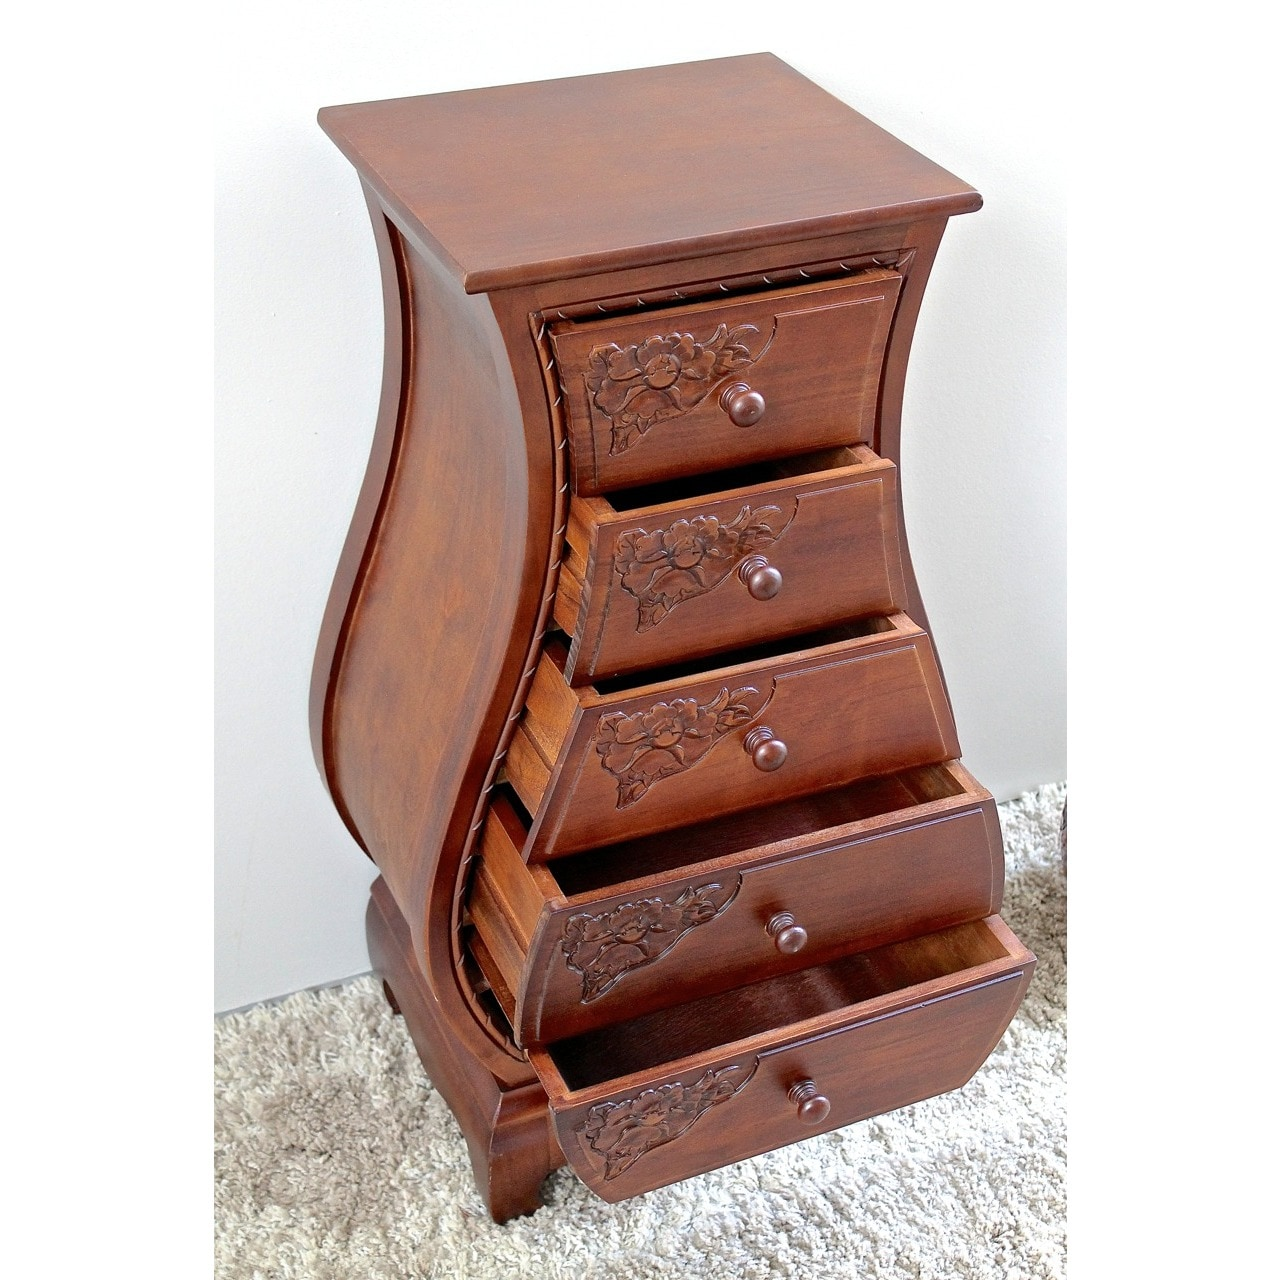 wood home detail colette dresser kuo product carved country kathy french